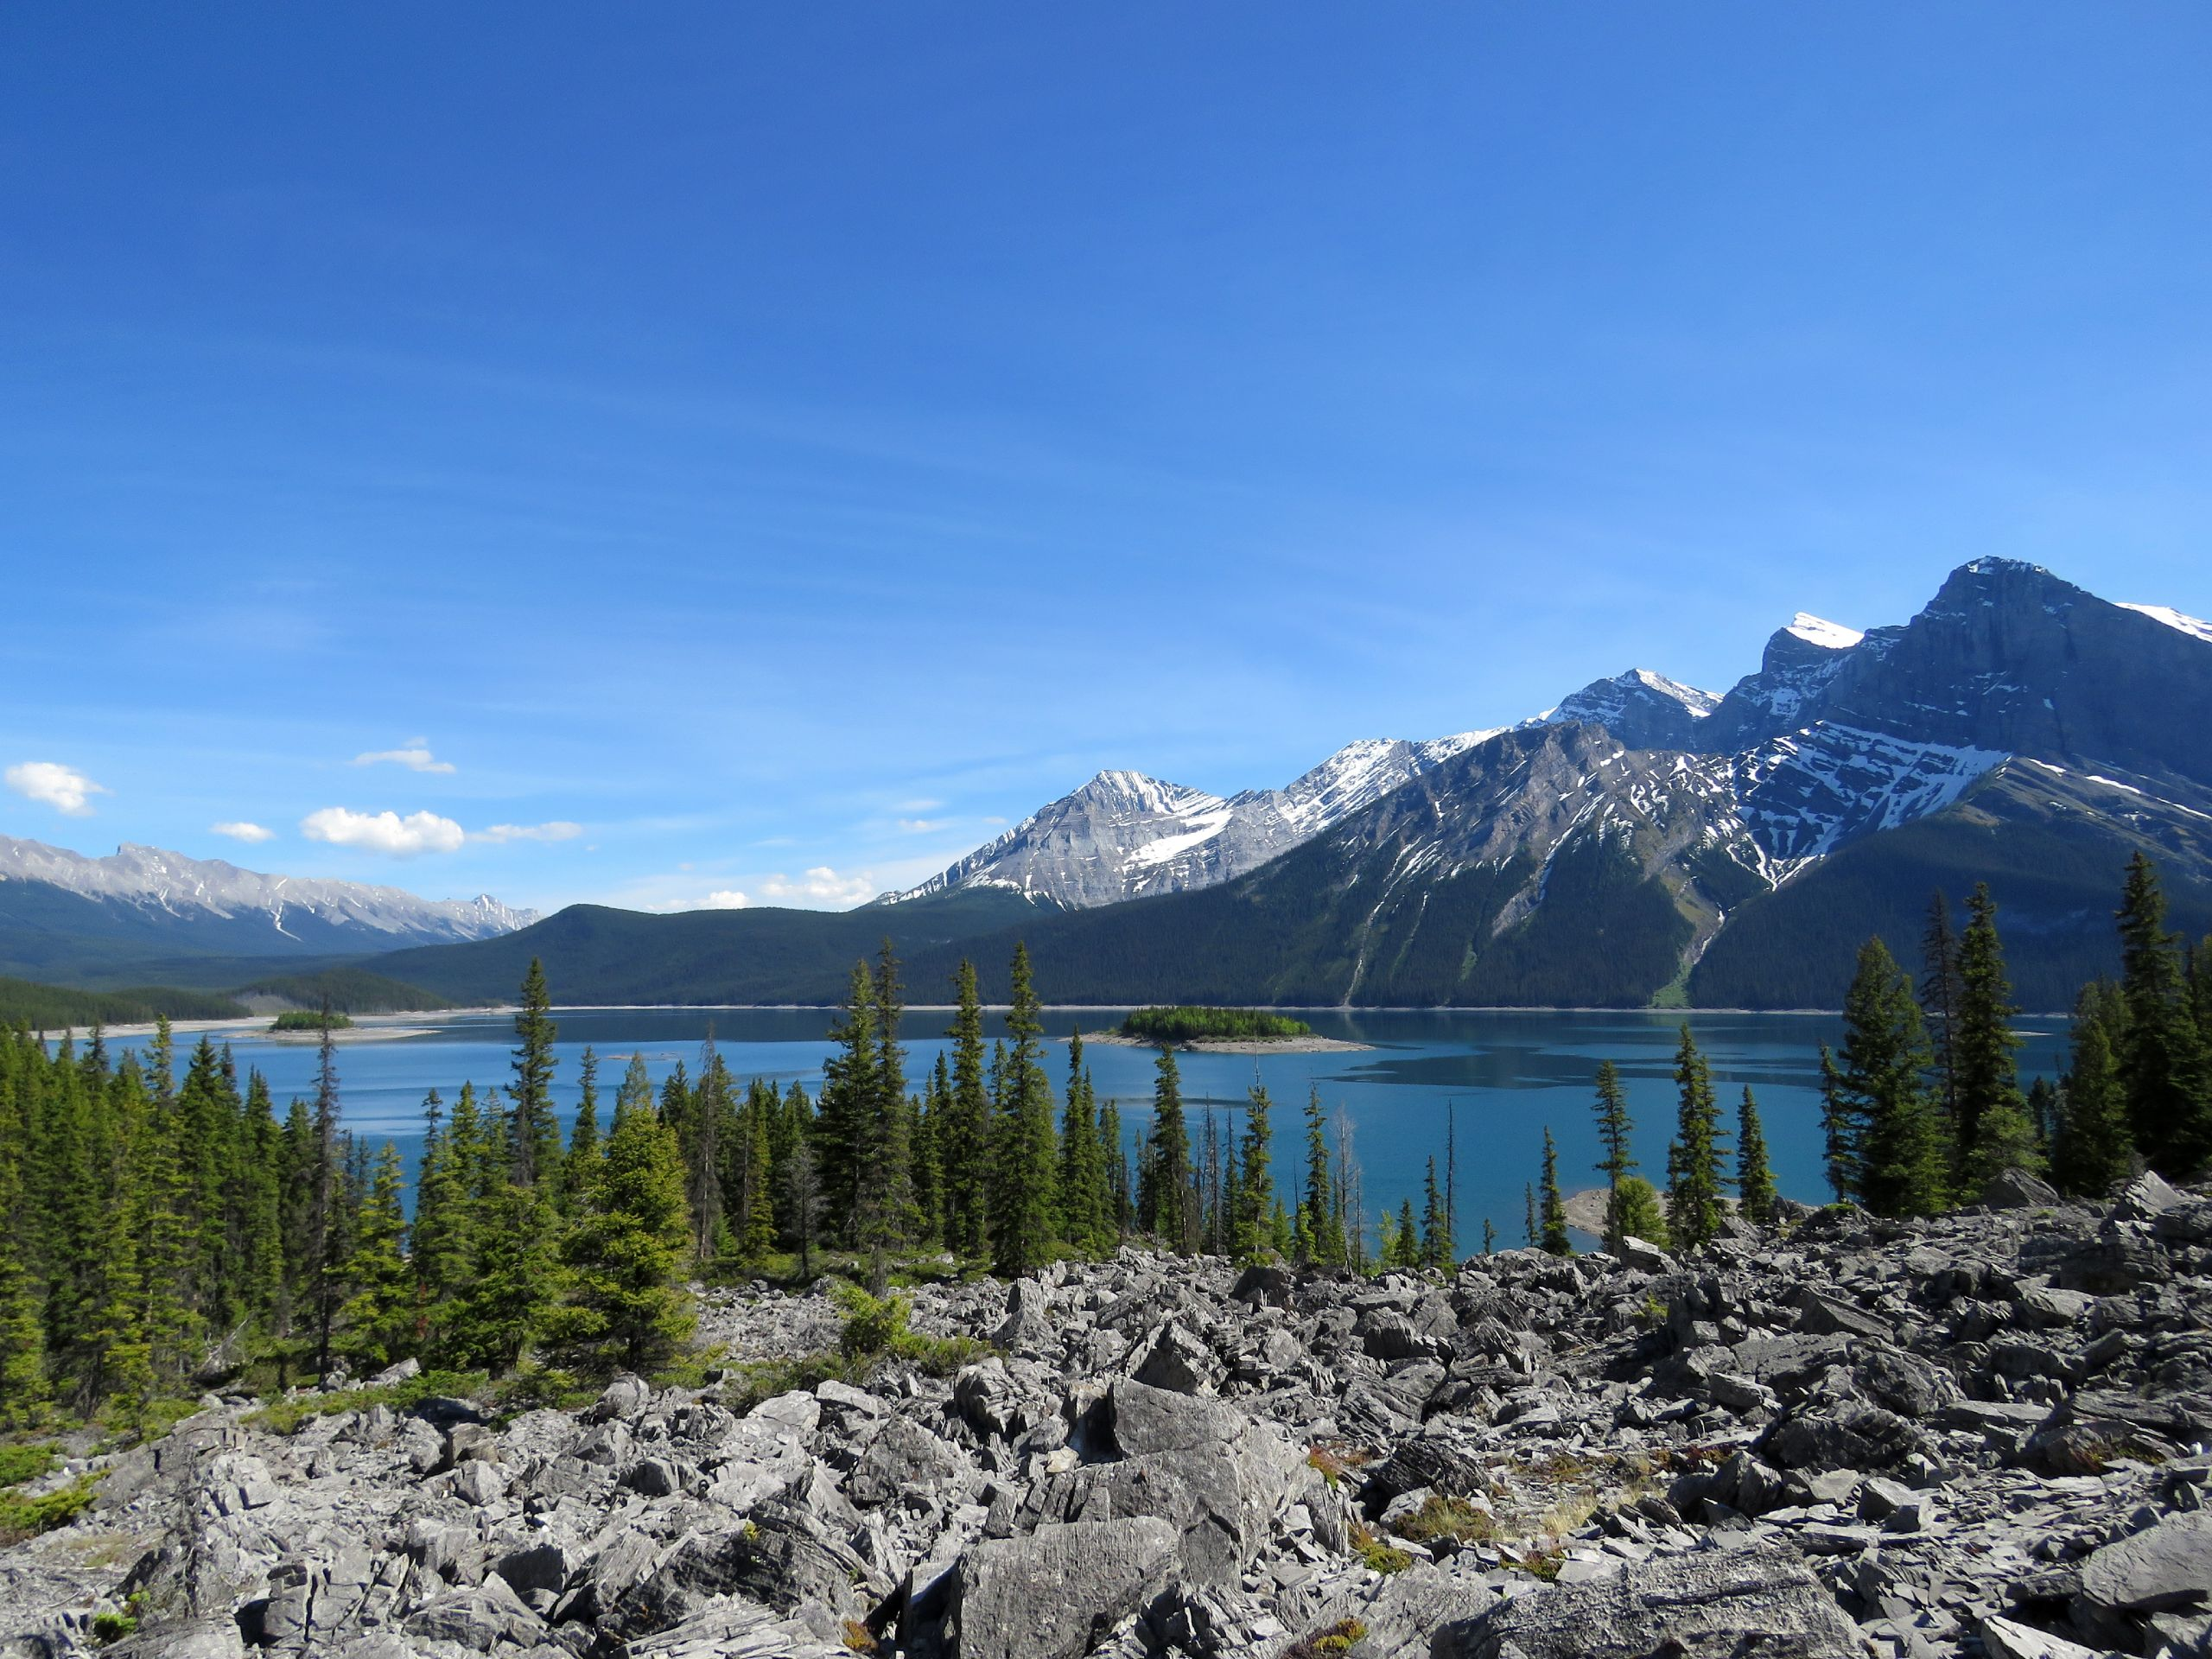 Beautiful Canadian wilderness in the Rocky Mountains